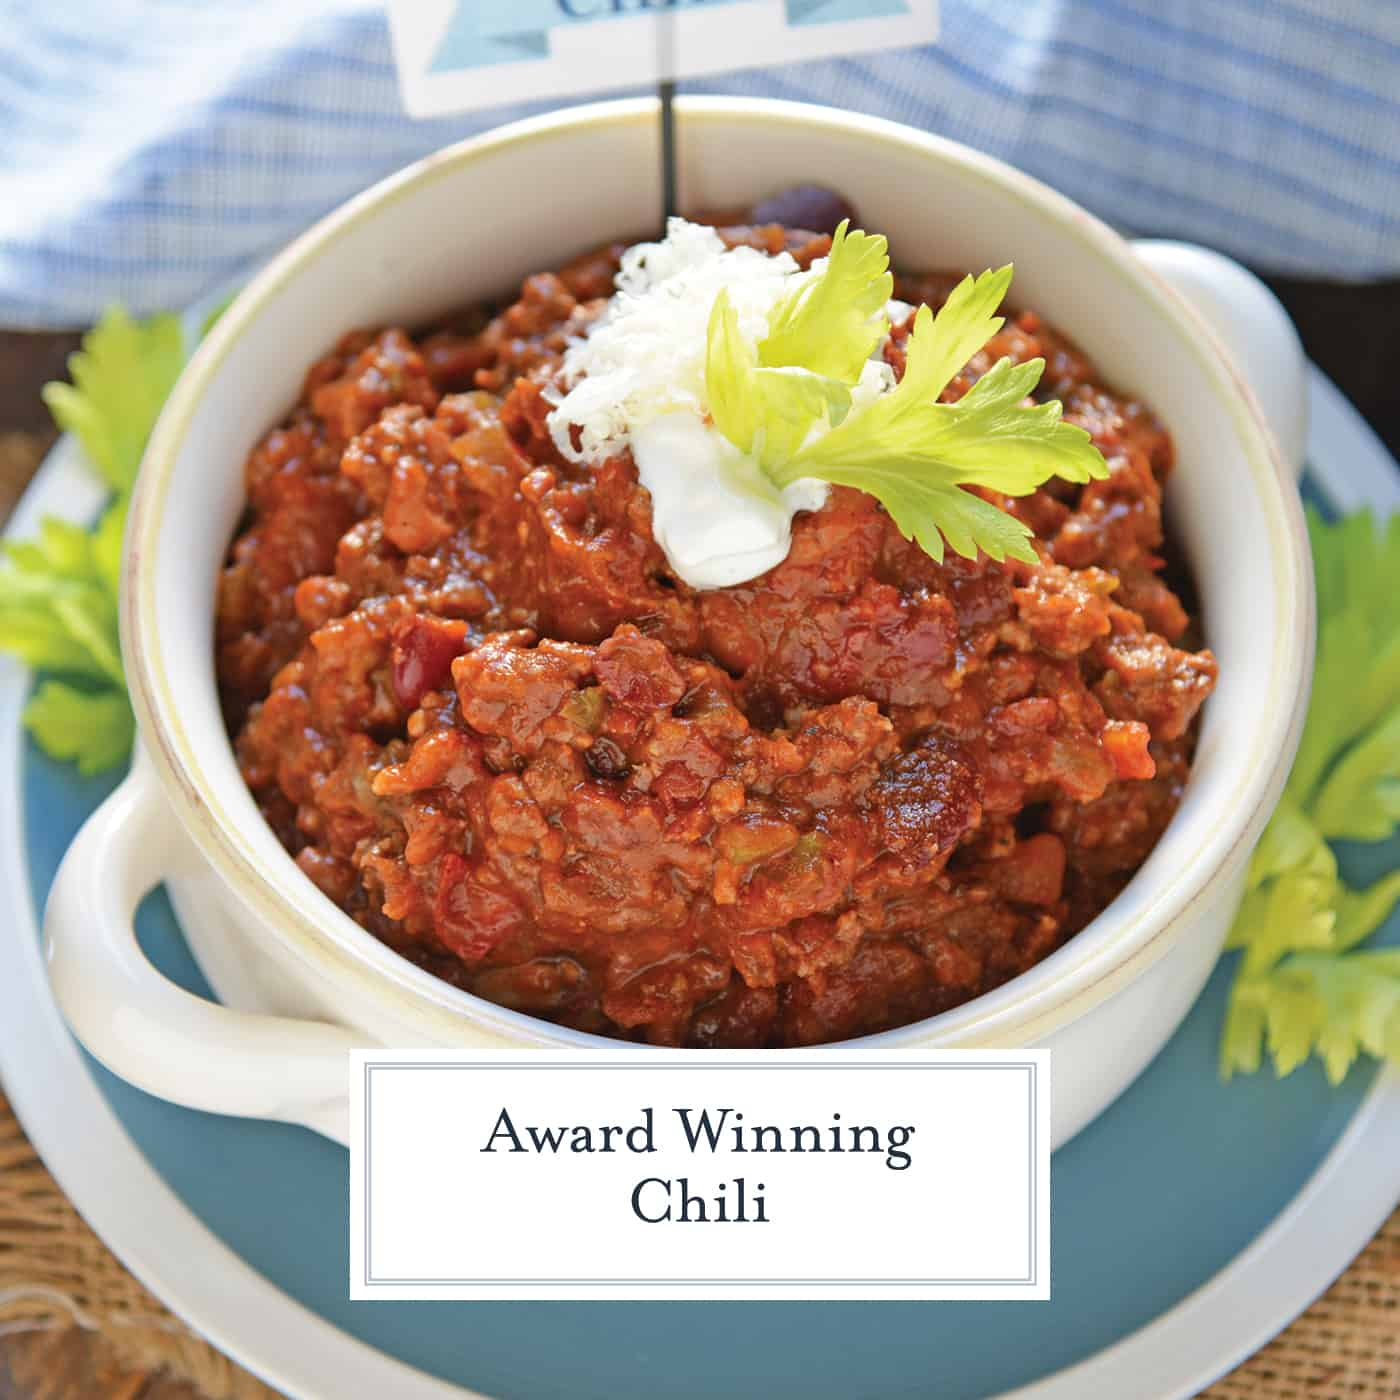 Blue Ribbon Award Winning Chili is a chili cook-off winning recipe! A robust and rich stew loaded with beef, sausage, bacon and tons of vegetables. #awardwinningchili #chilirecipe www.savoryexperiments.com